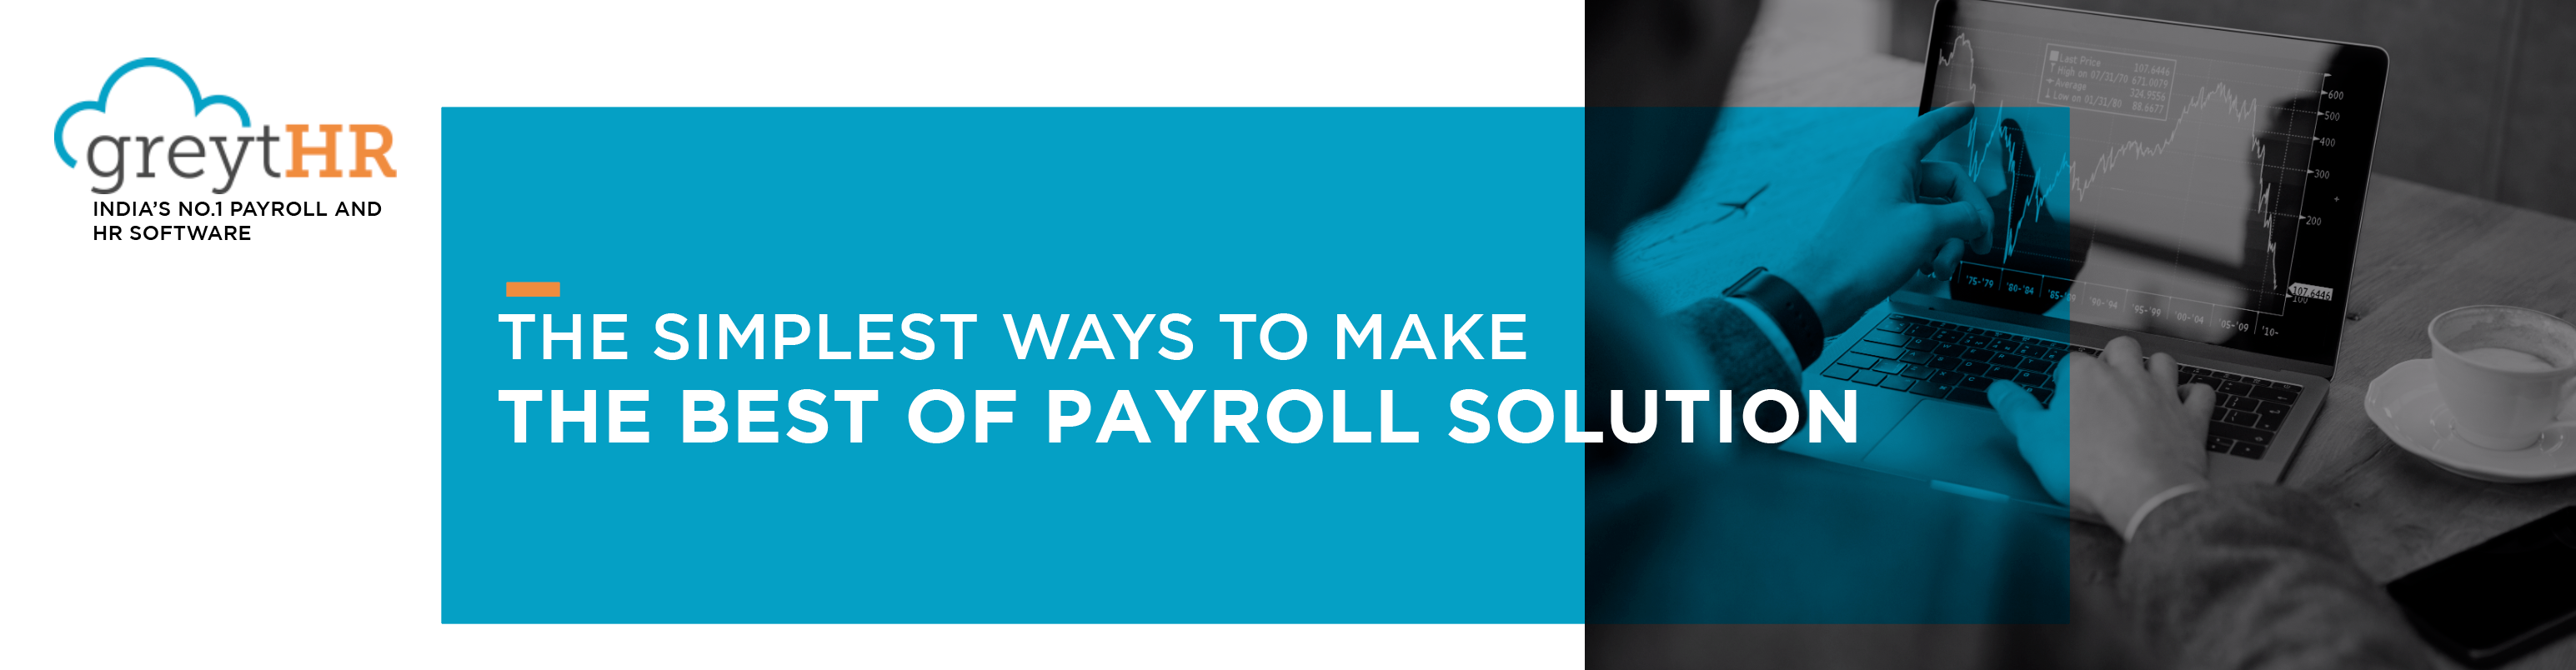 The Simplest Ways to Make the Best of Payroll Solution